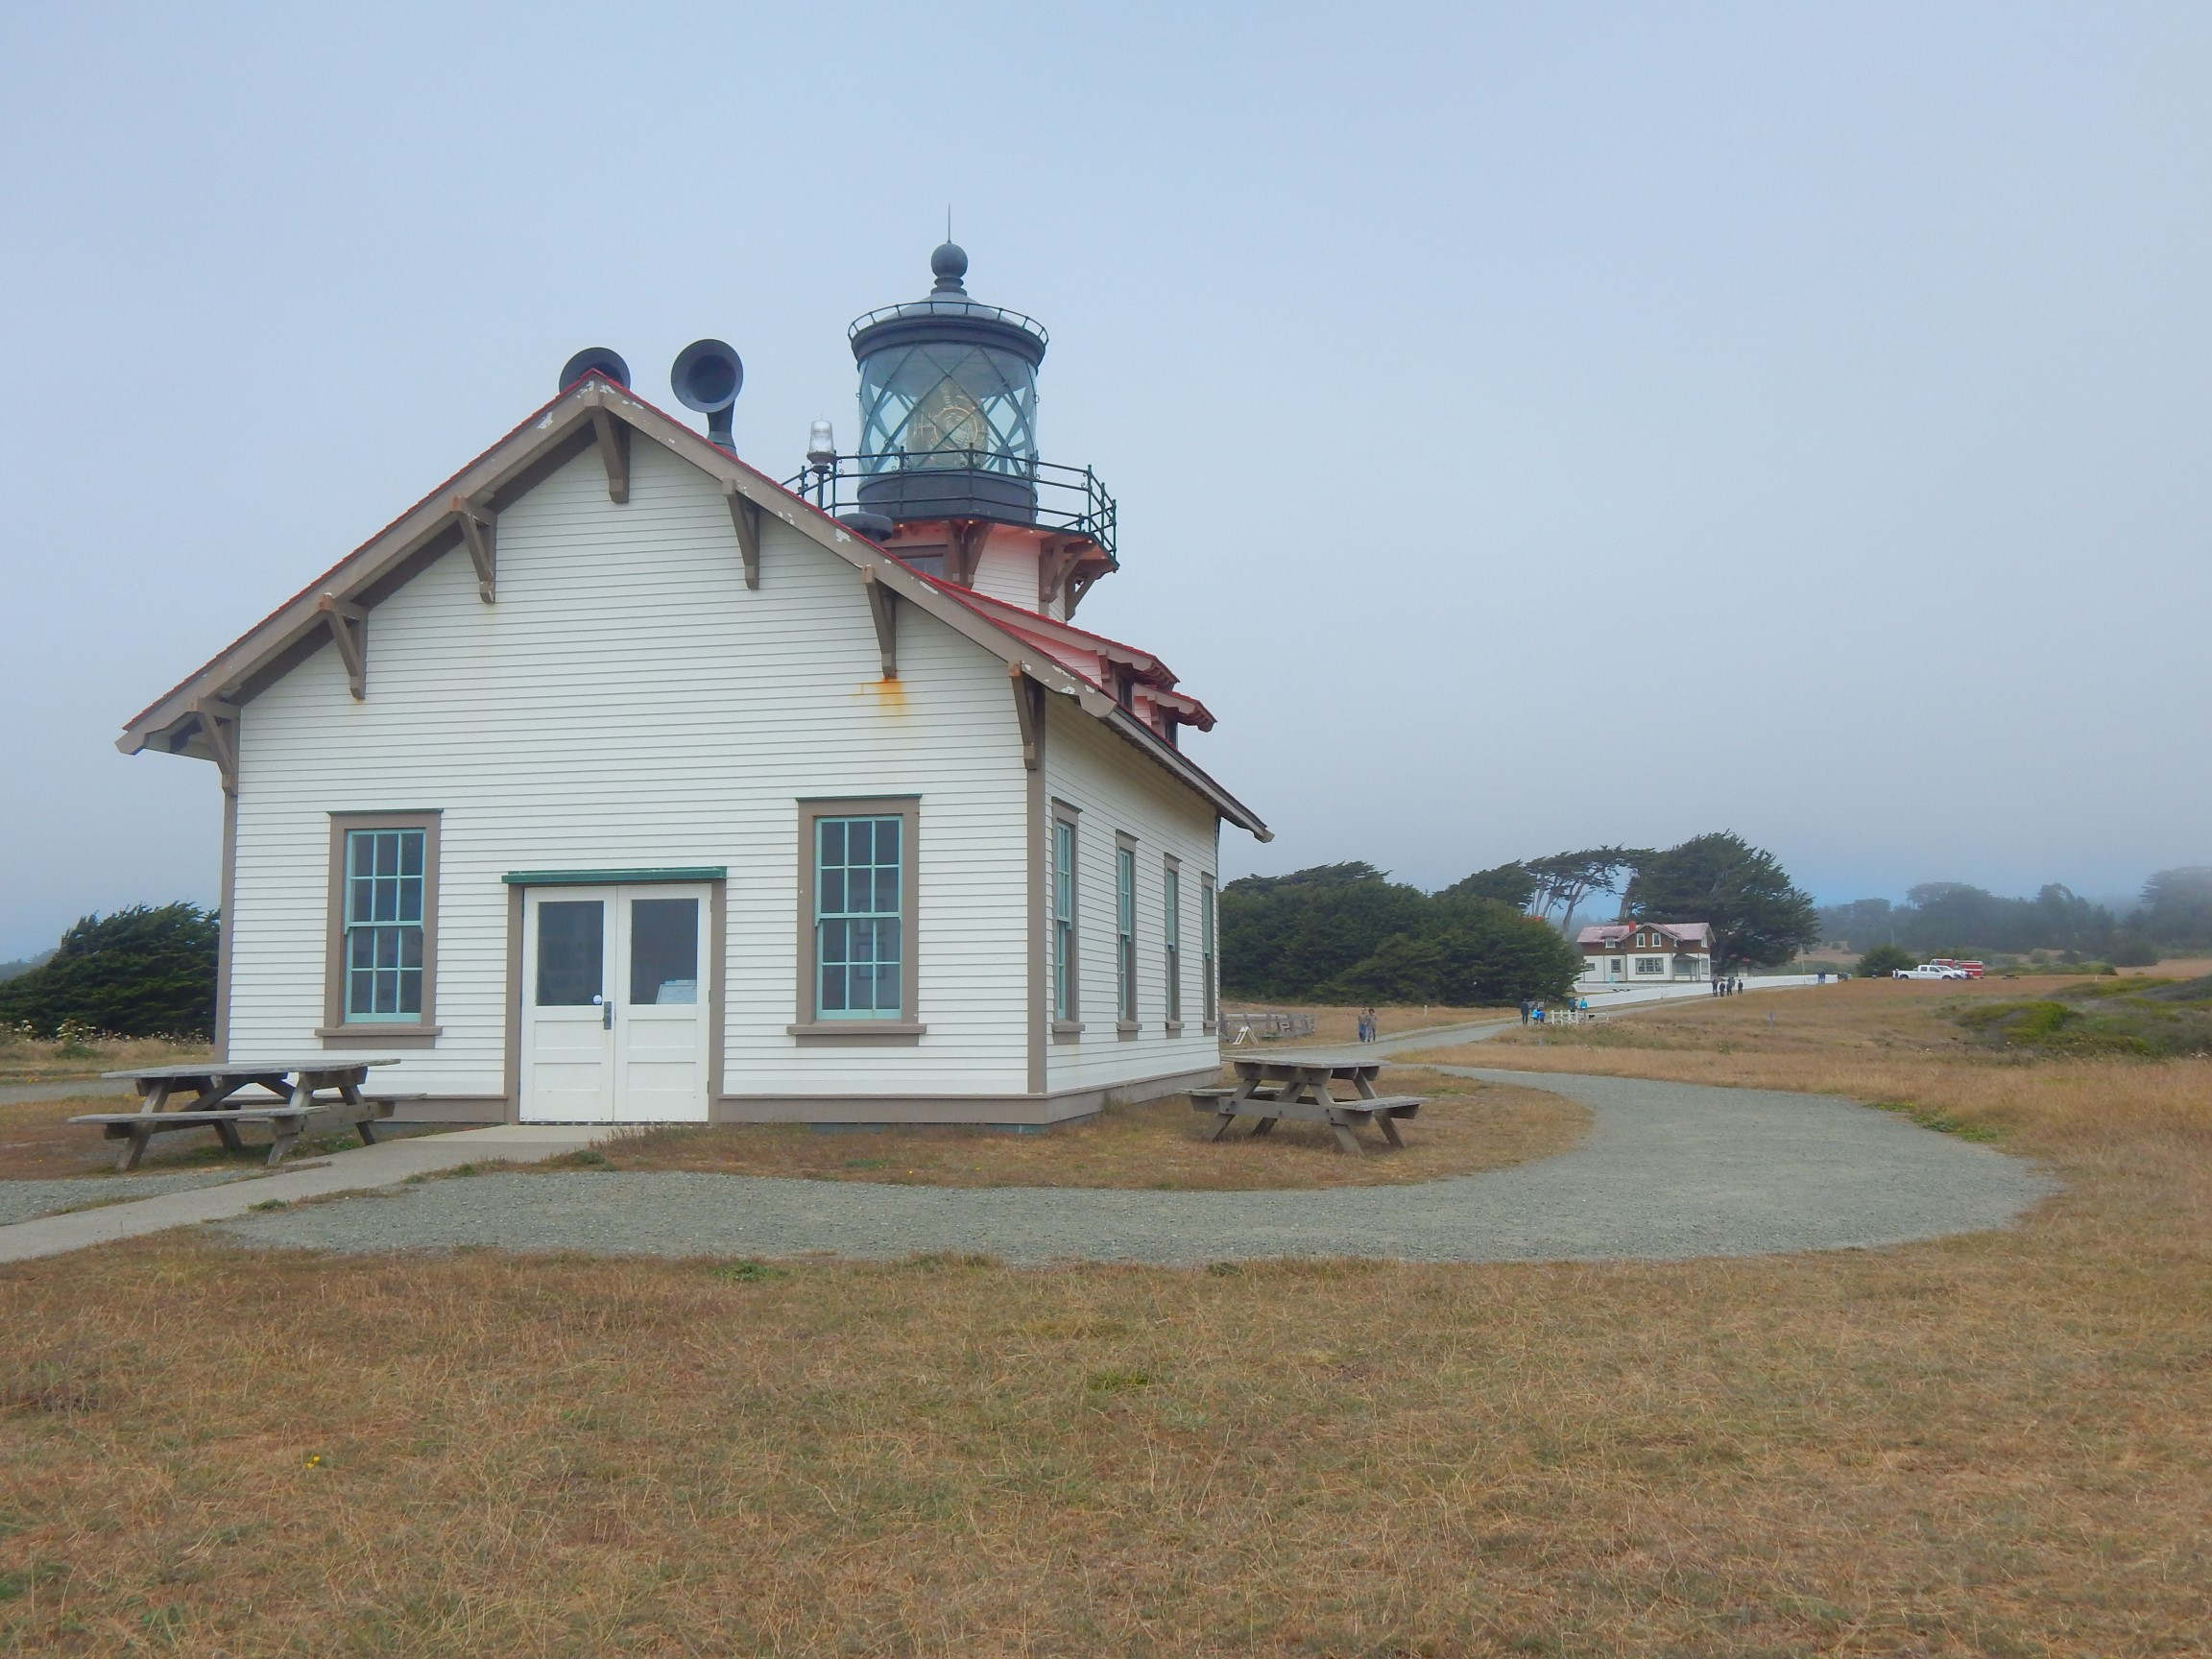 Point Carrillo Light House in Mendocino